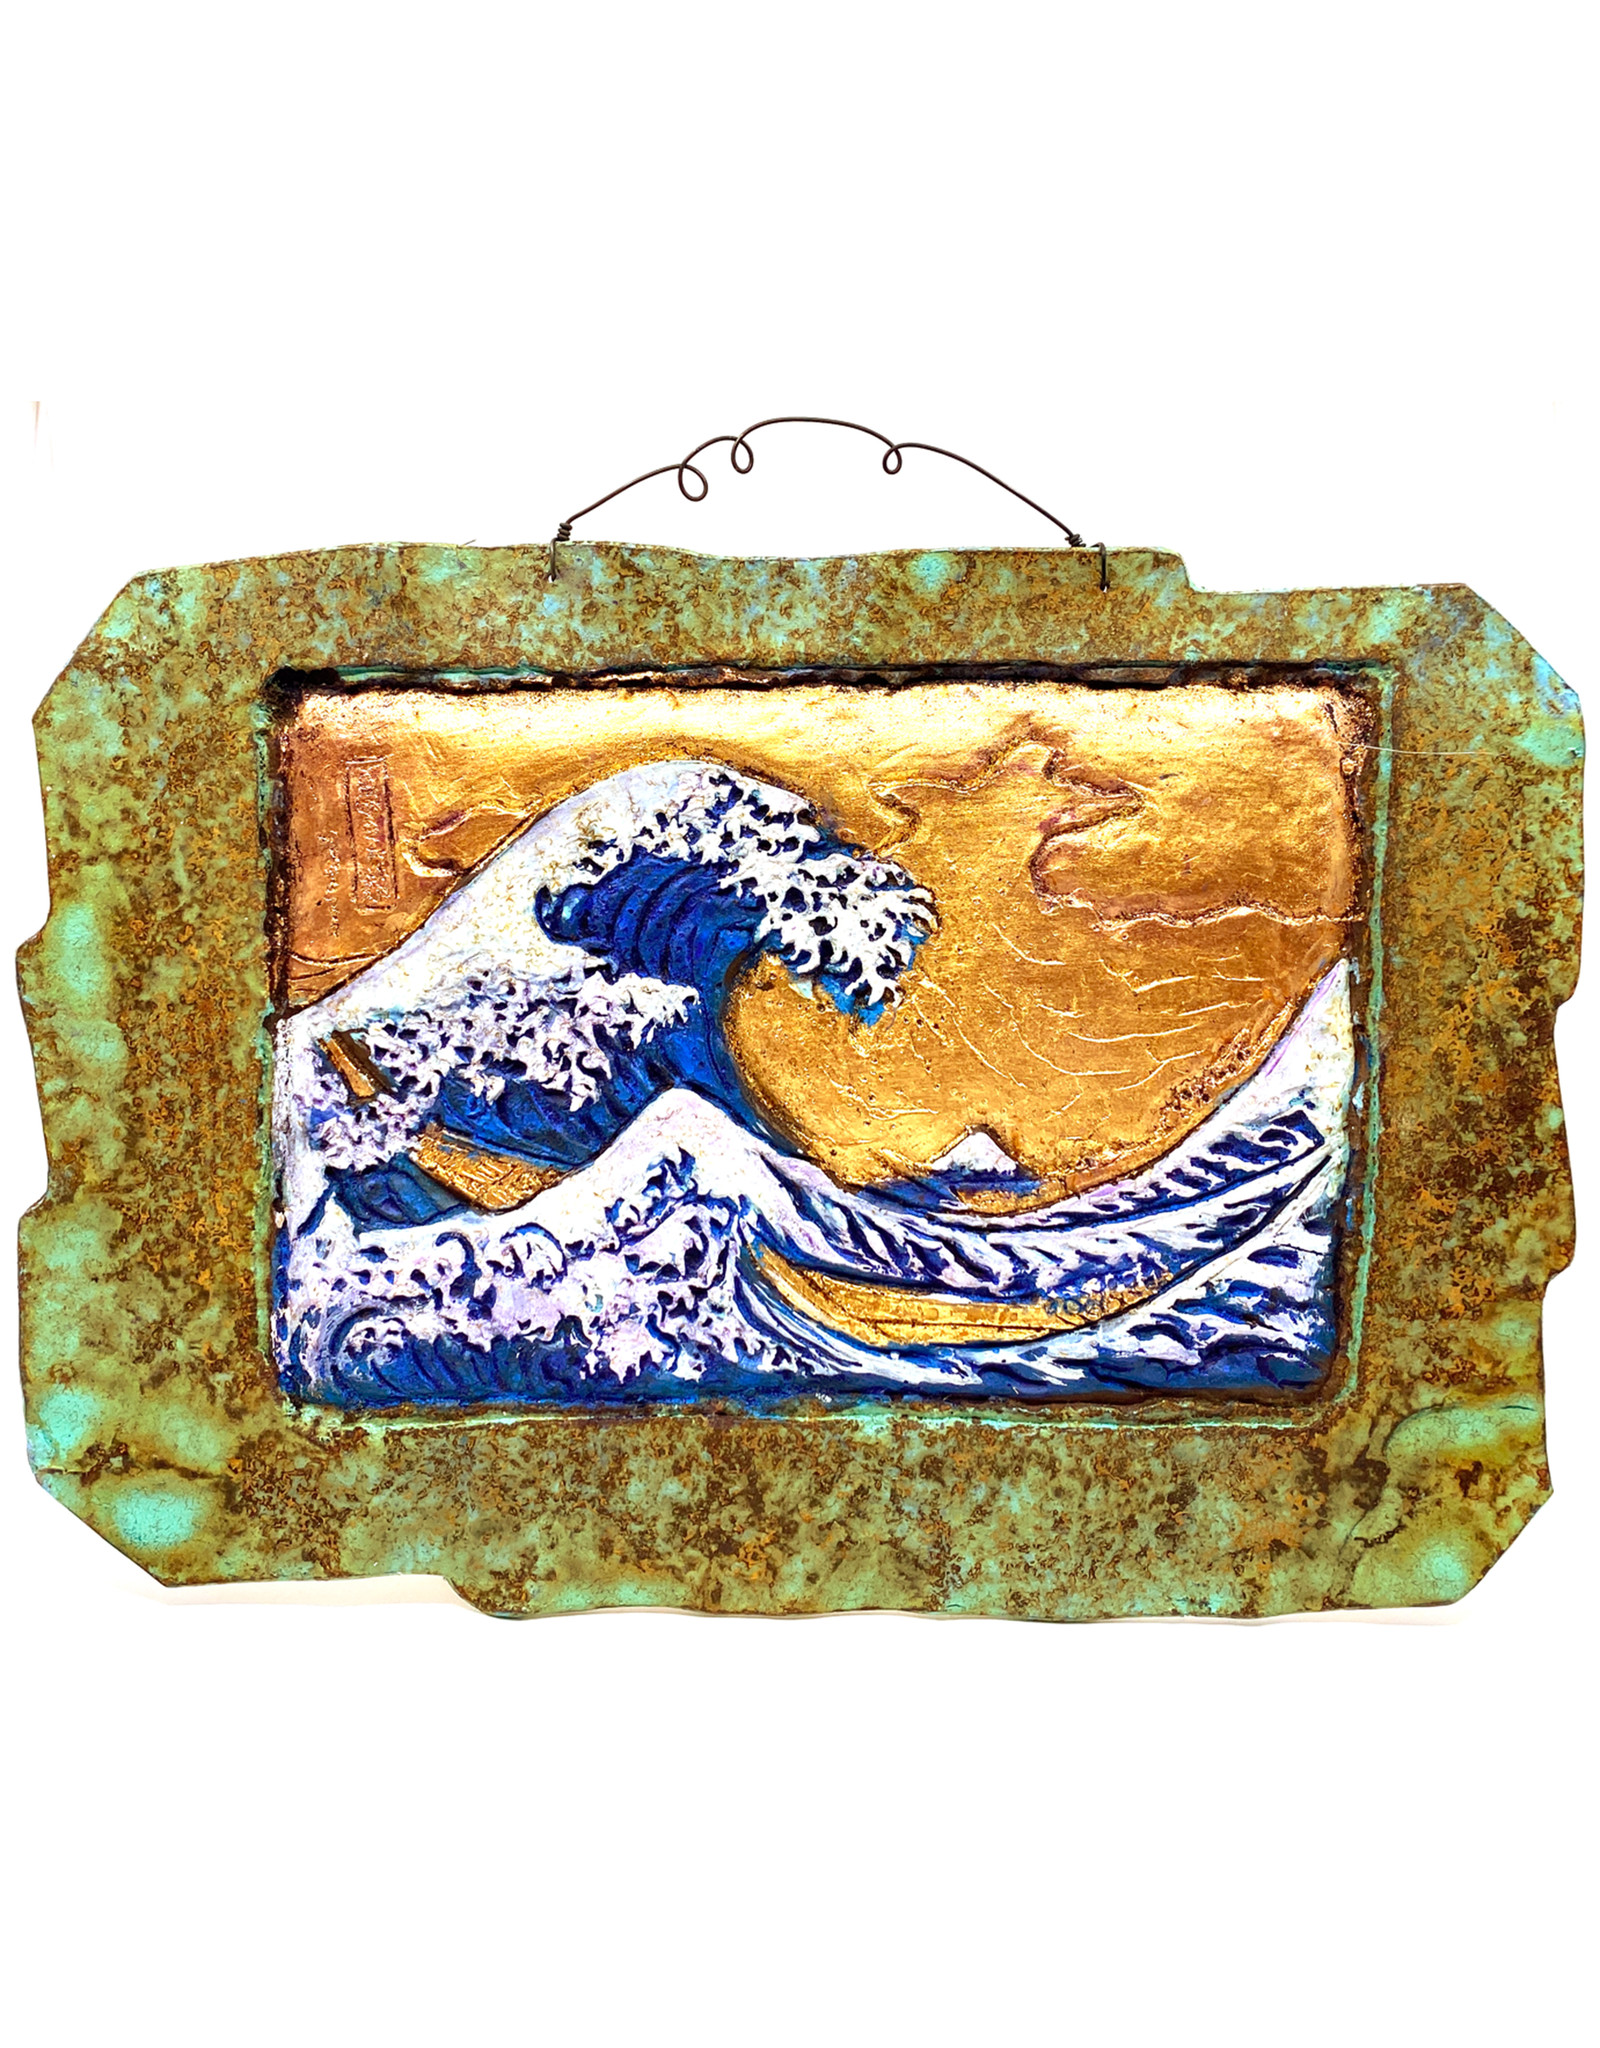 PAPER & STONE GREAT WAVE WALL PLAQUE